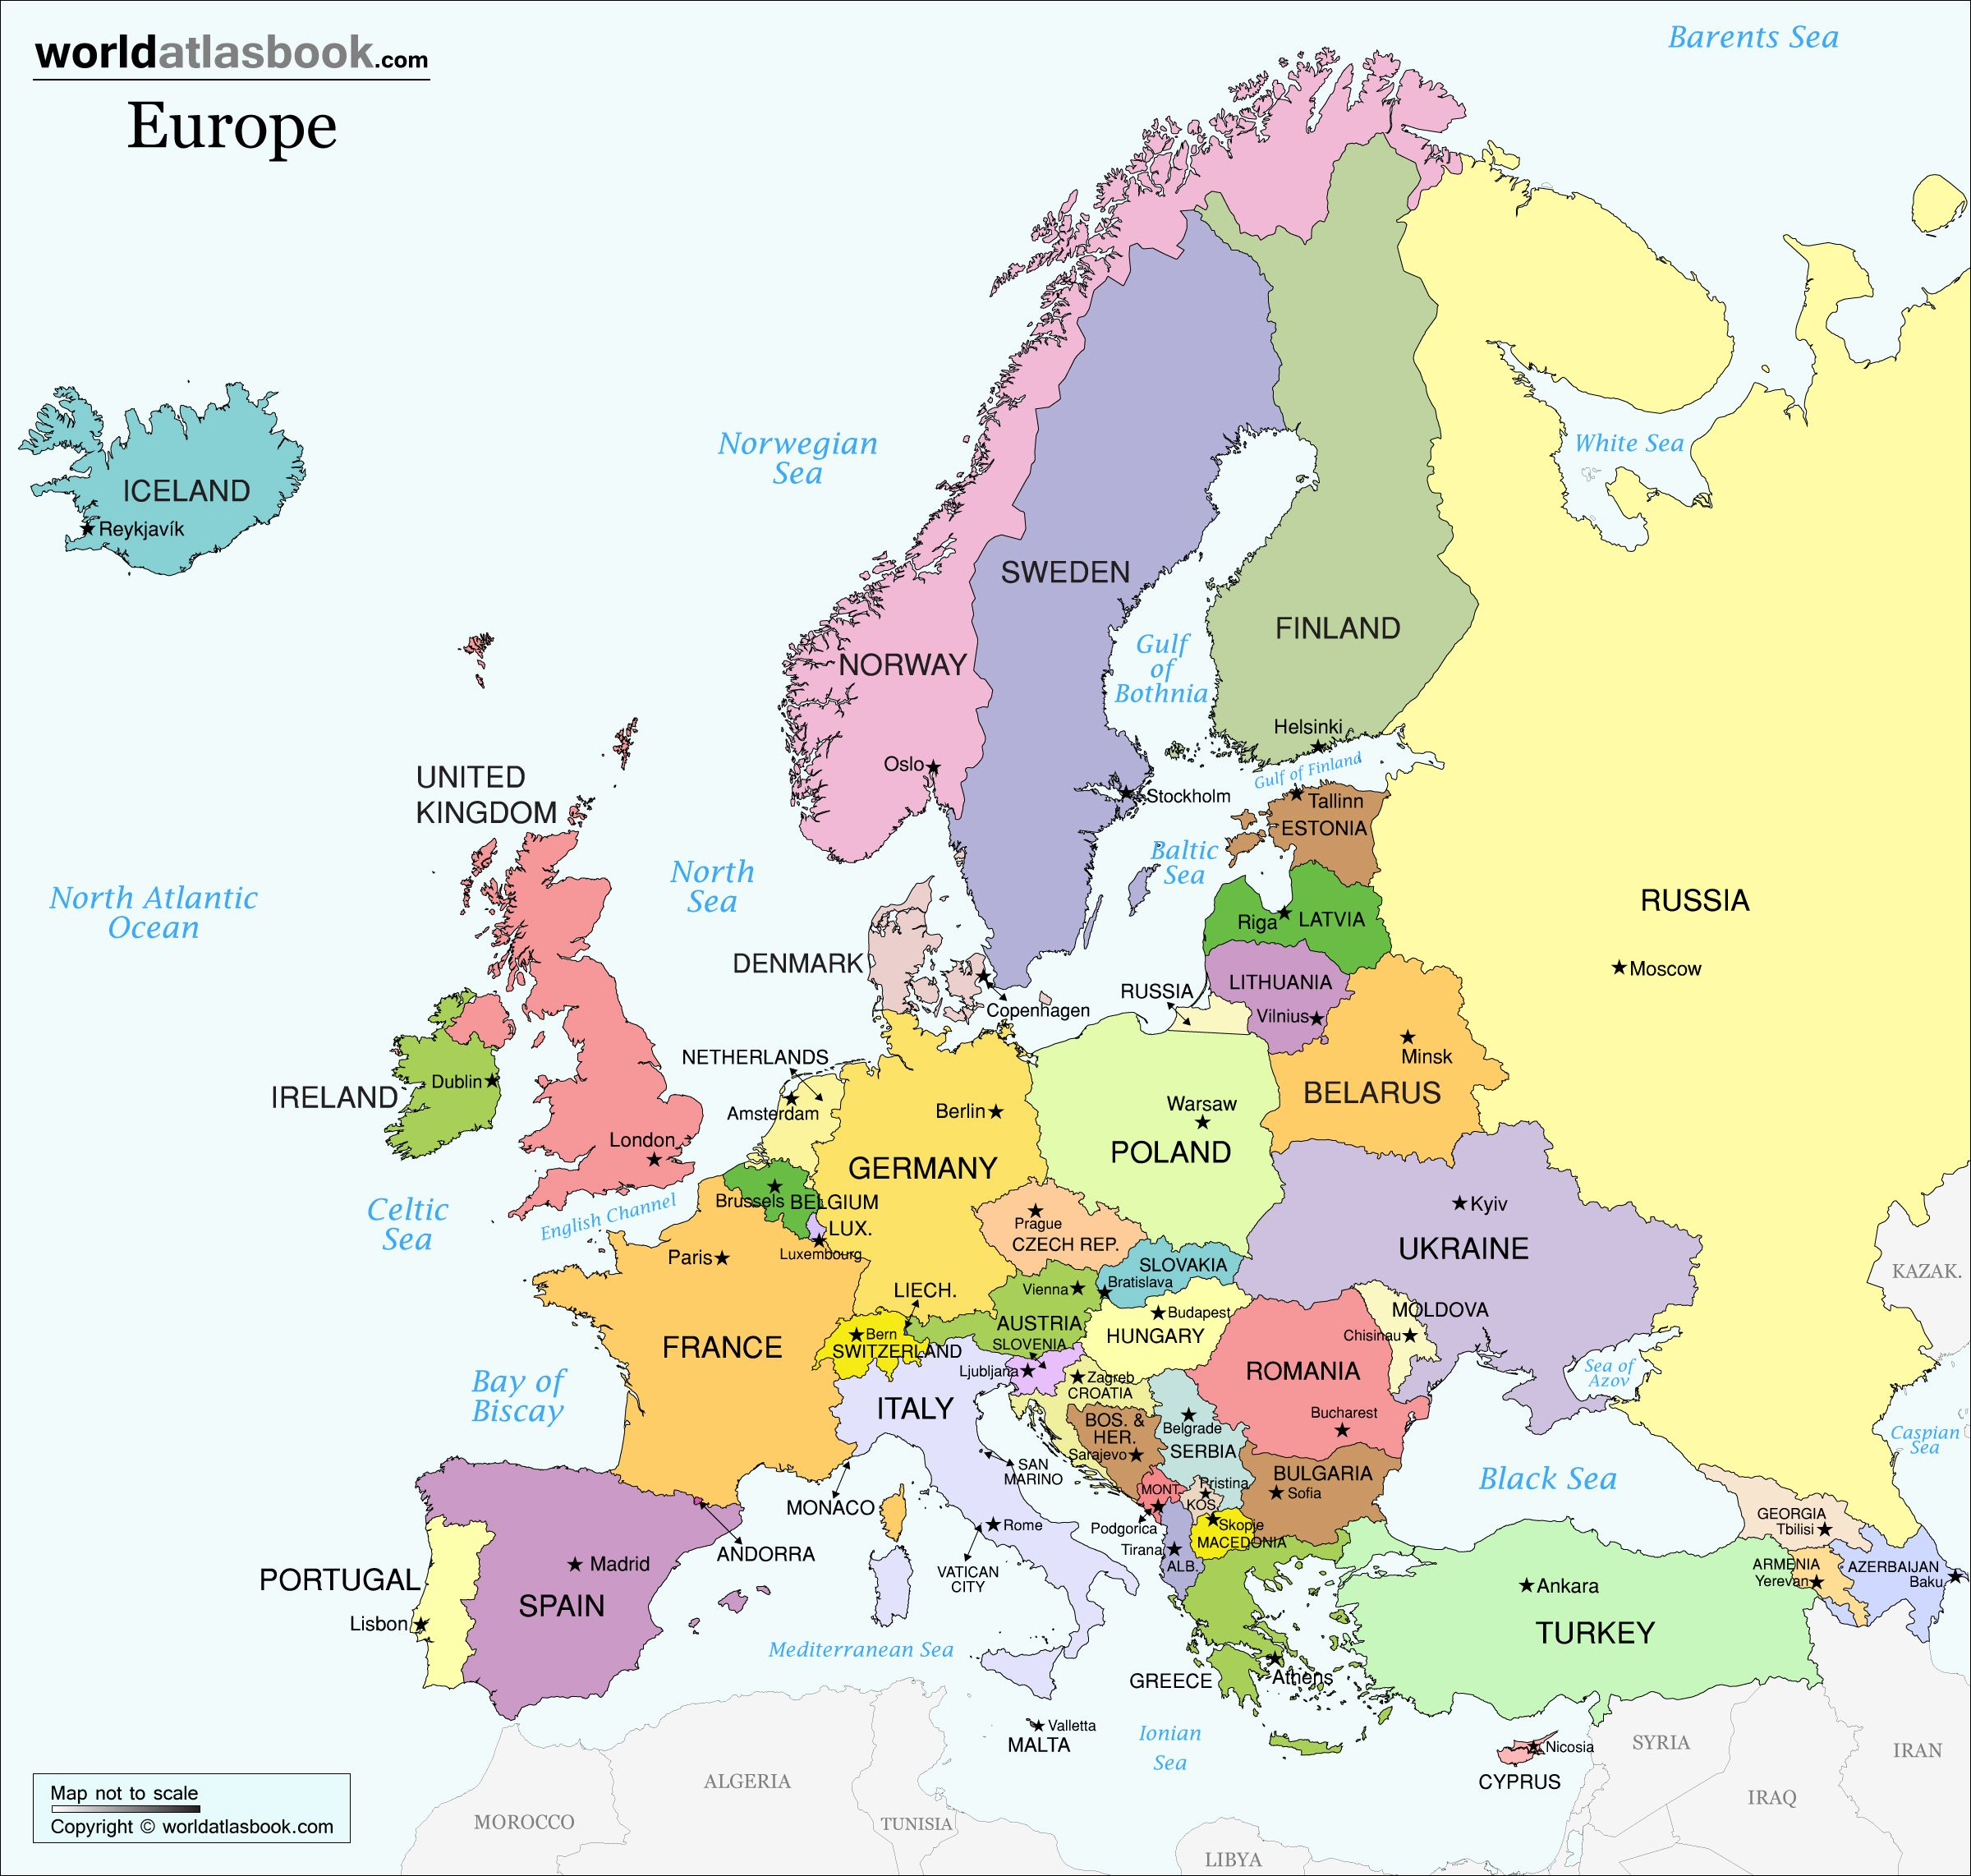 Europe Wooooooh Amsterdam Belgium Couple Days France Spain A Weekend Italy Switerland Austria Prague Travel T Europe Map Country Maps Political Map